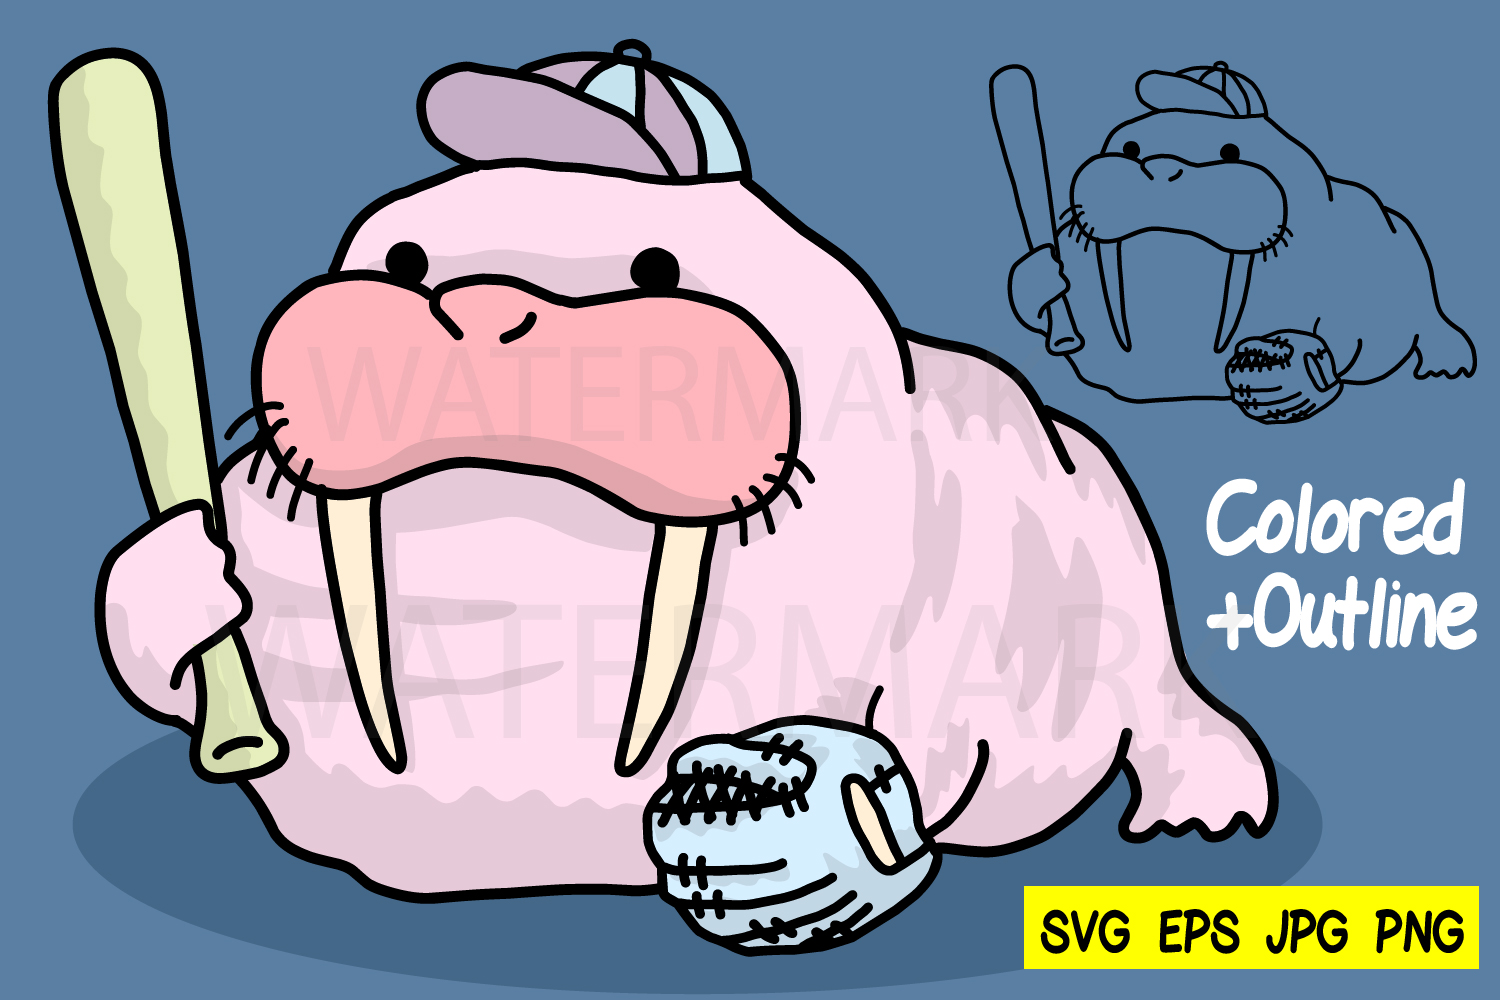 Walrus baseball- Outline and Colored - SVG-EPS-JPG-PNG example image 1